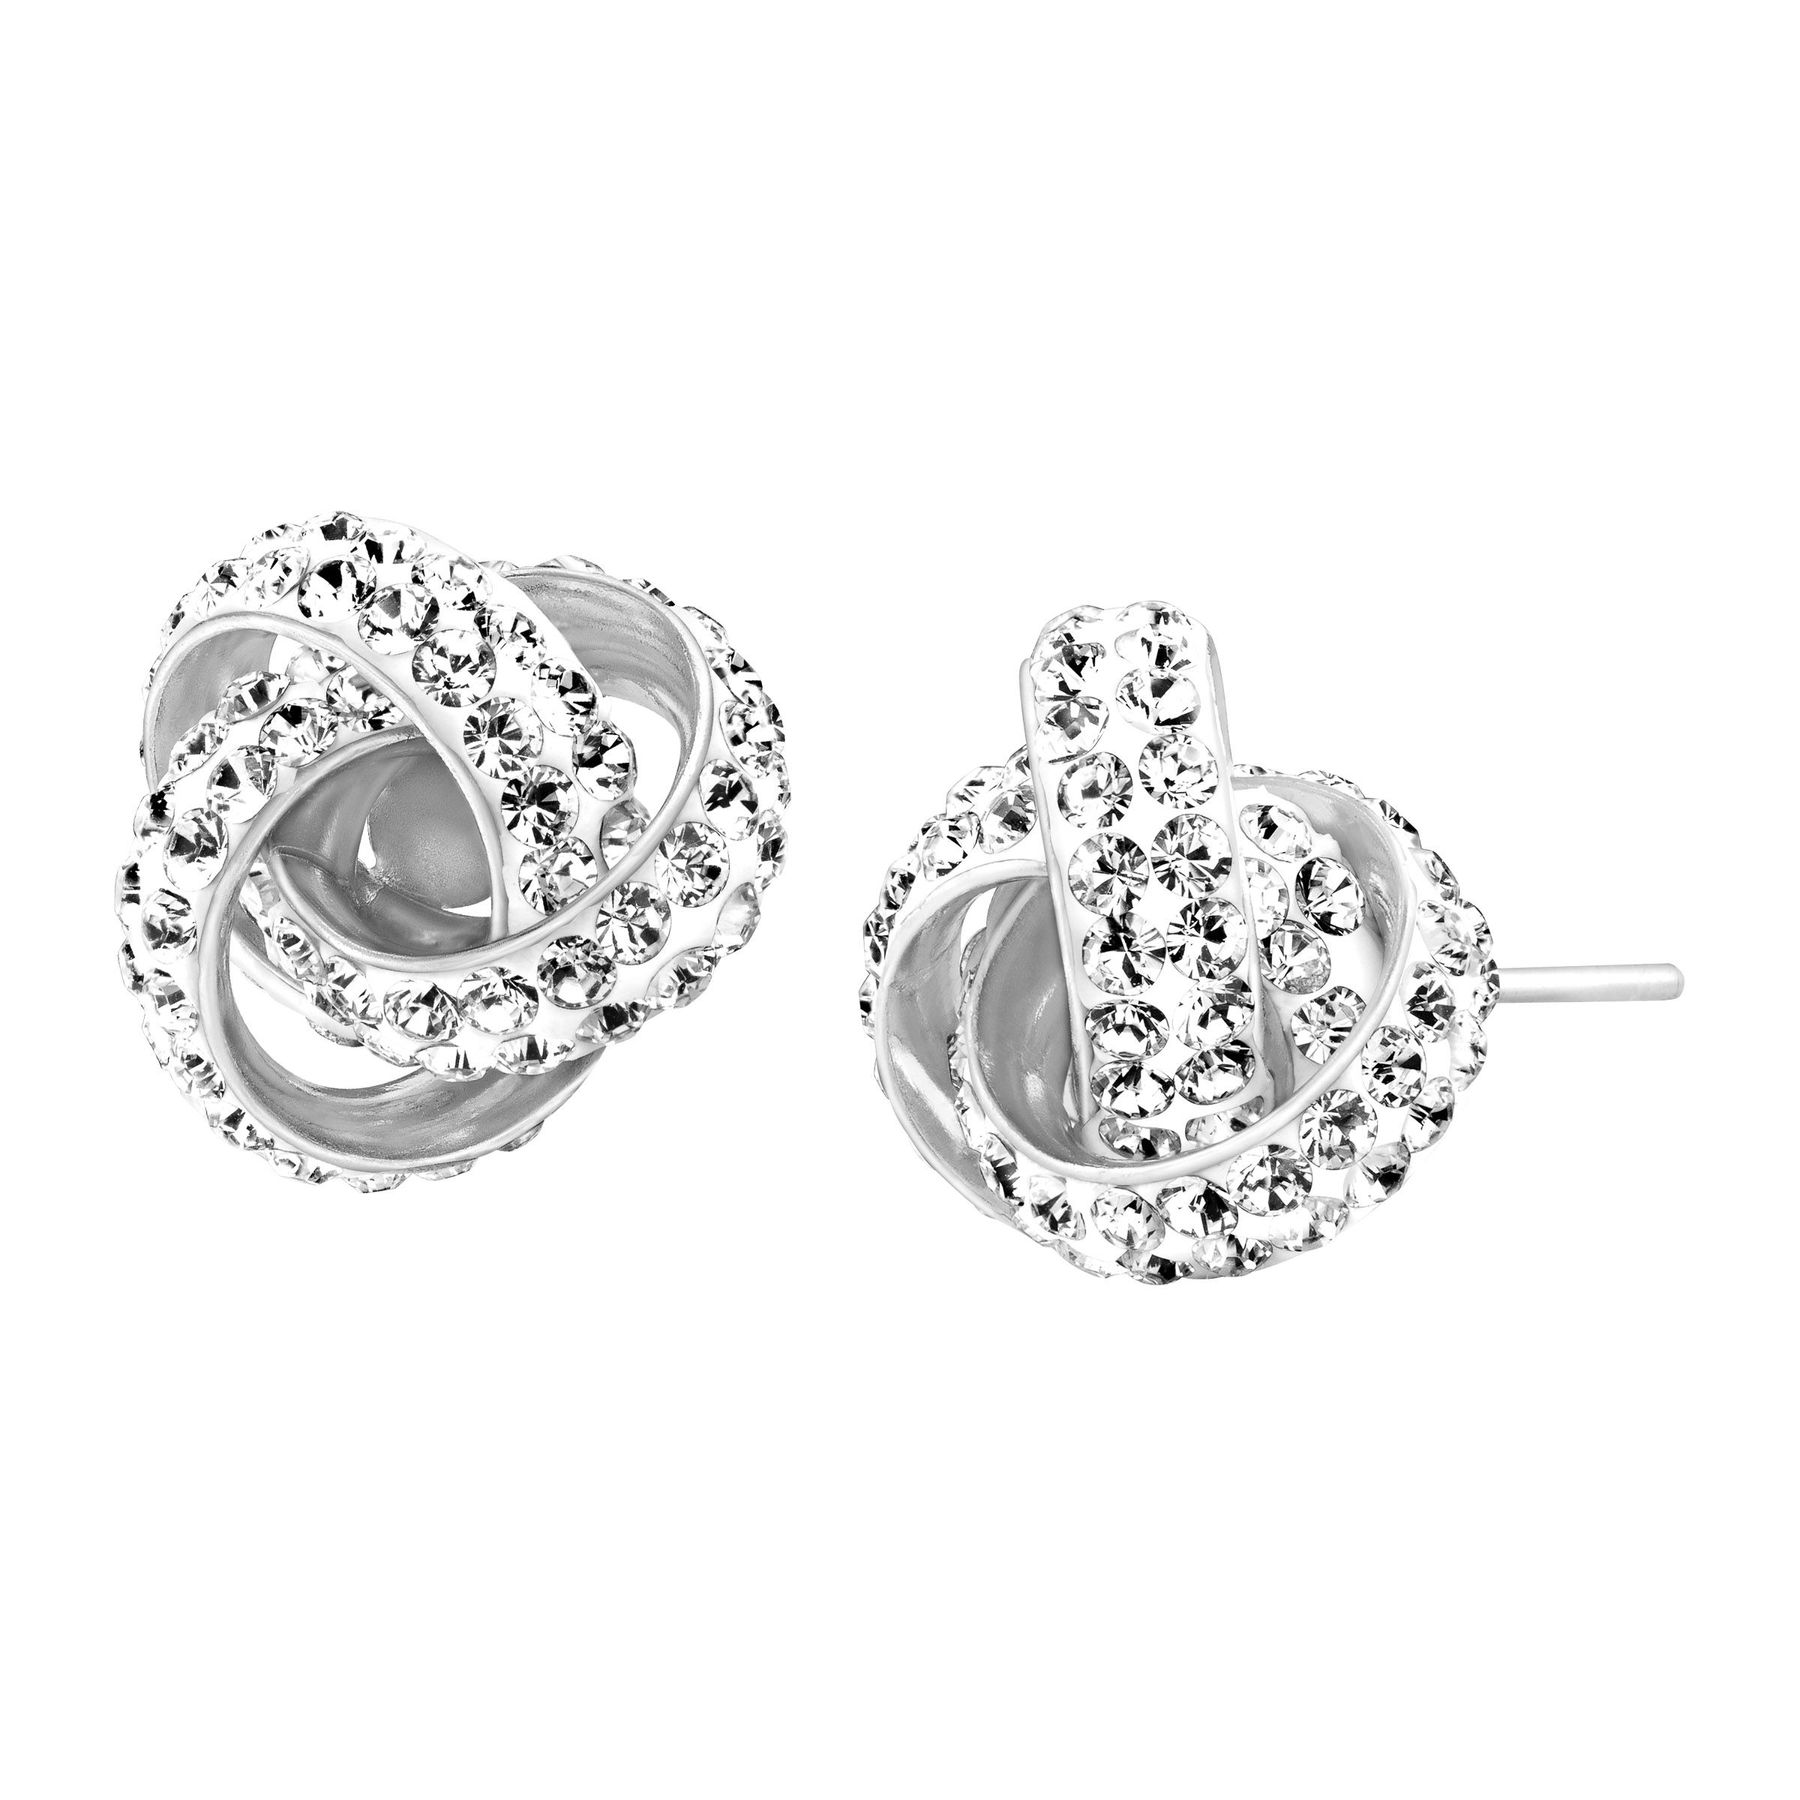 Love Knot Stud Earrings With Swarovski Crystals